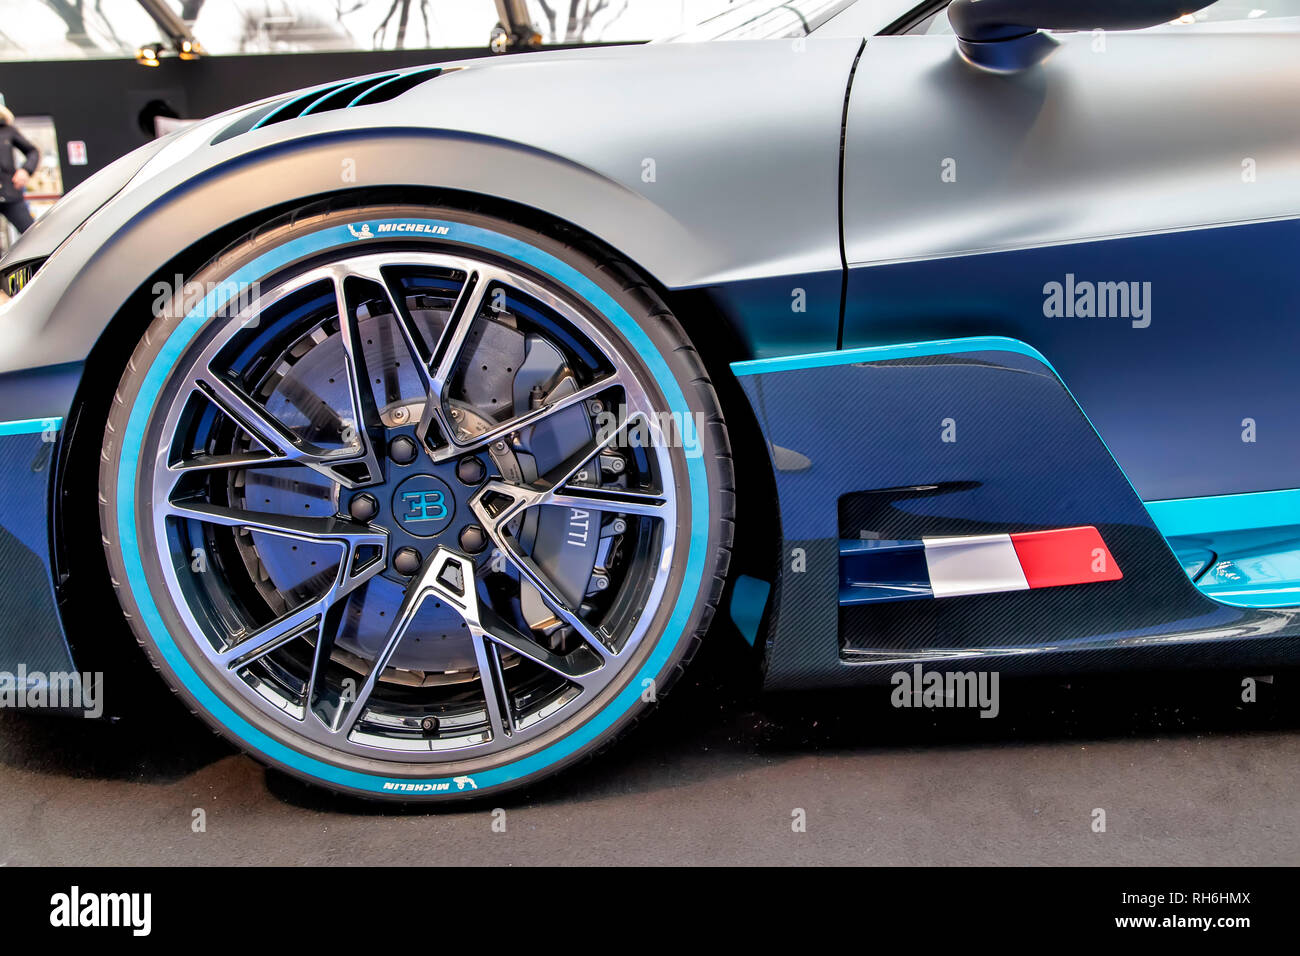 Paris, France. 31st Jan, 2019. Bugatti Divo - The International Automobile Festival brings together in Paris the most beautiful concept cars made by car manufacturers, from January 30th to February 31st, 2019. Credit: Bernard Menigault/Alamy Live News - Stock Image